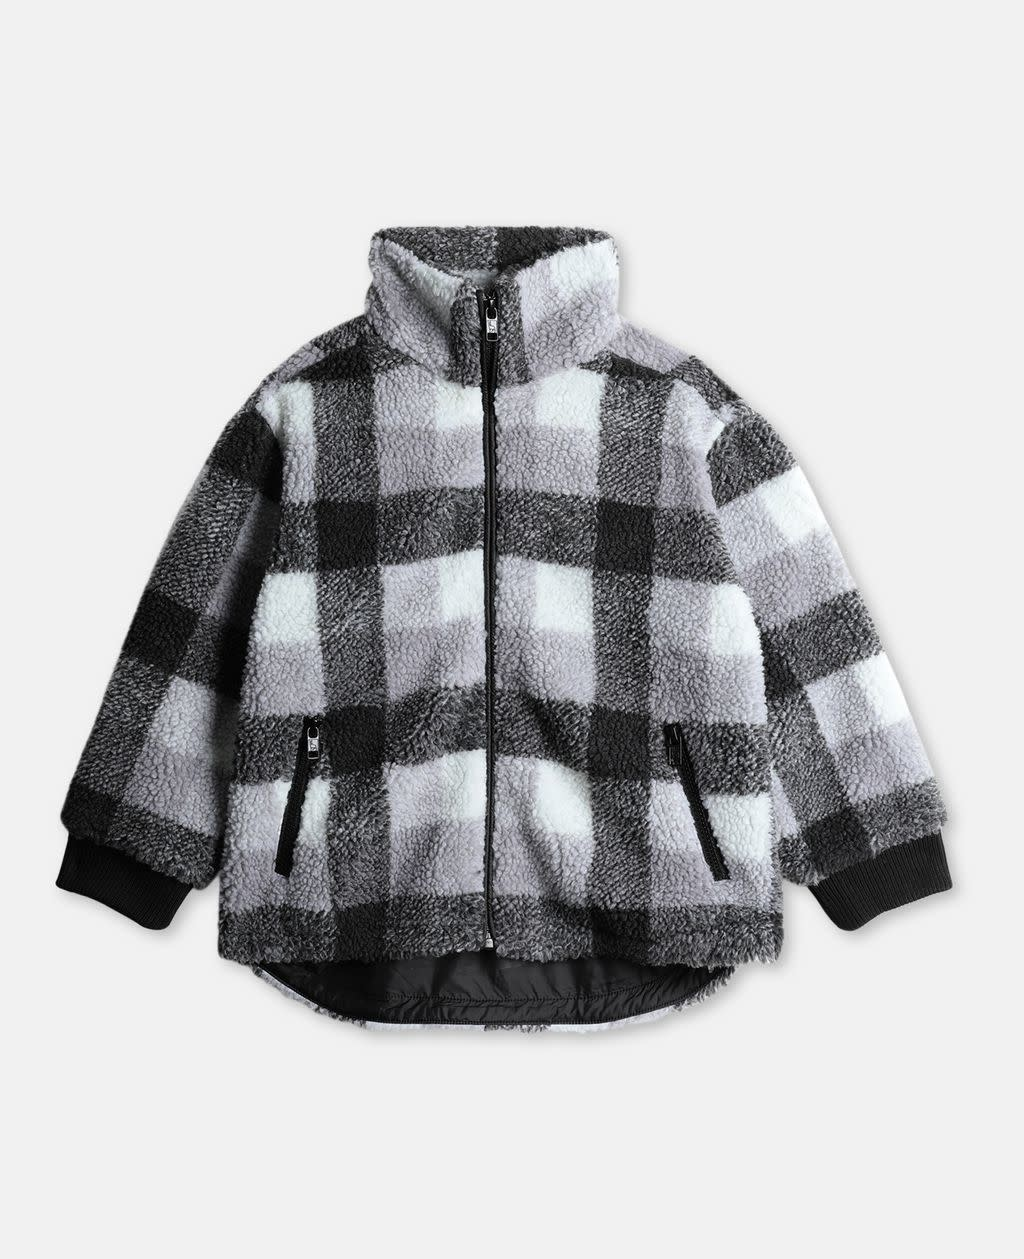 STELLA MCCARTNEY Check Teddy Jacket